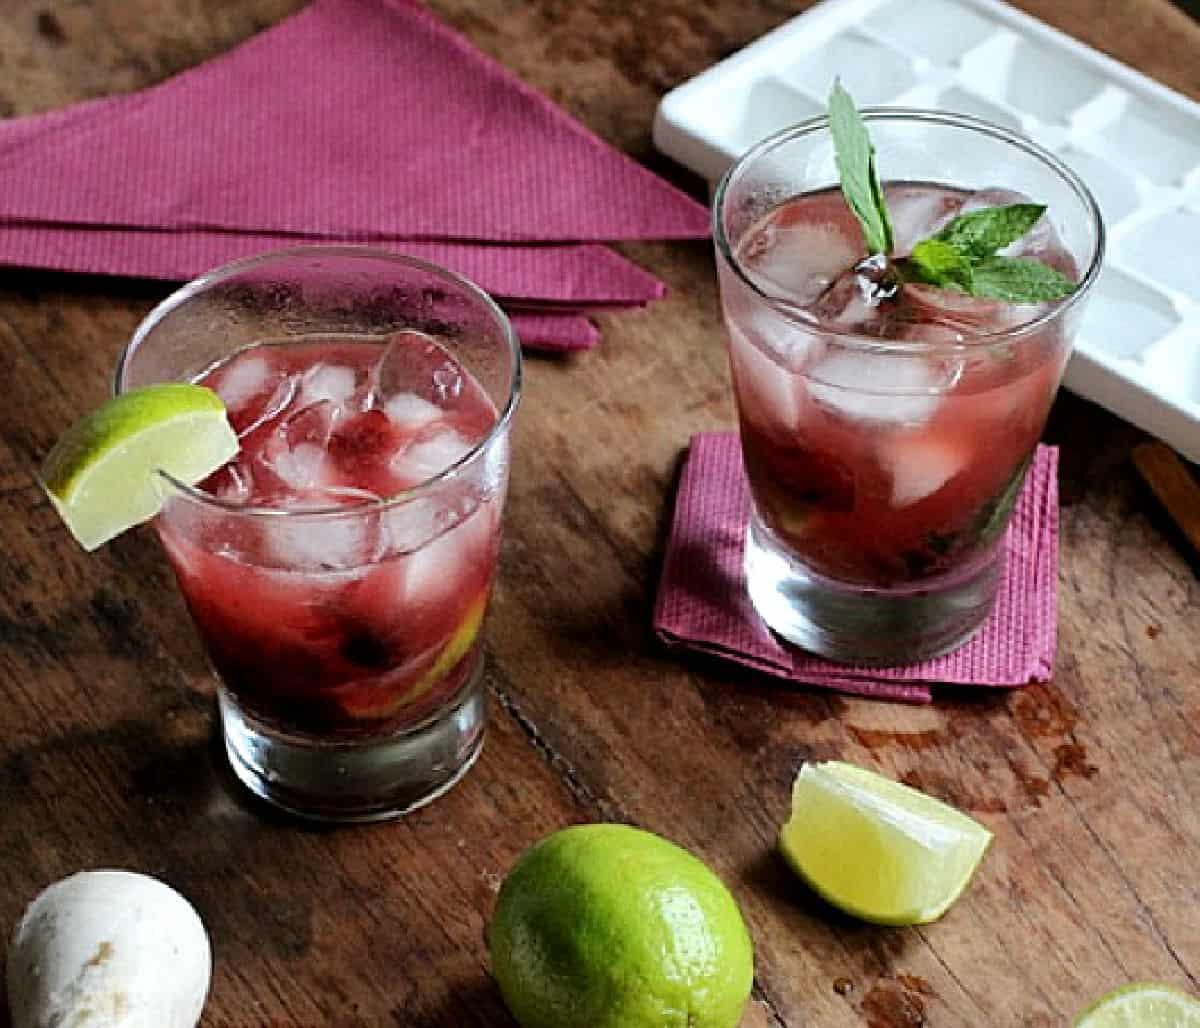 Two glasses with cherry cocktail on wooden table, limes, purple napkins